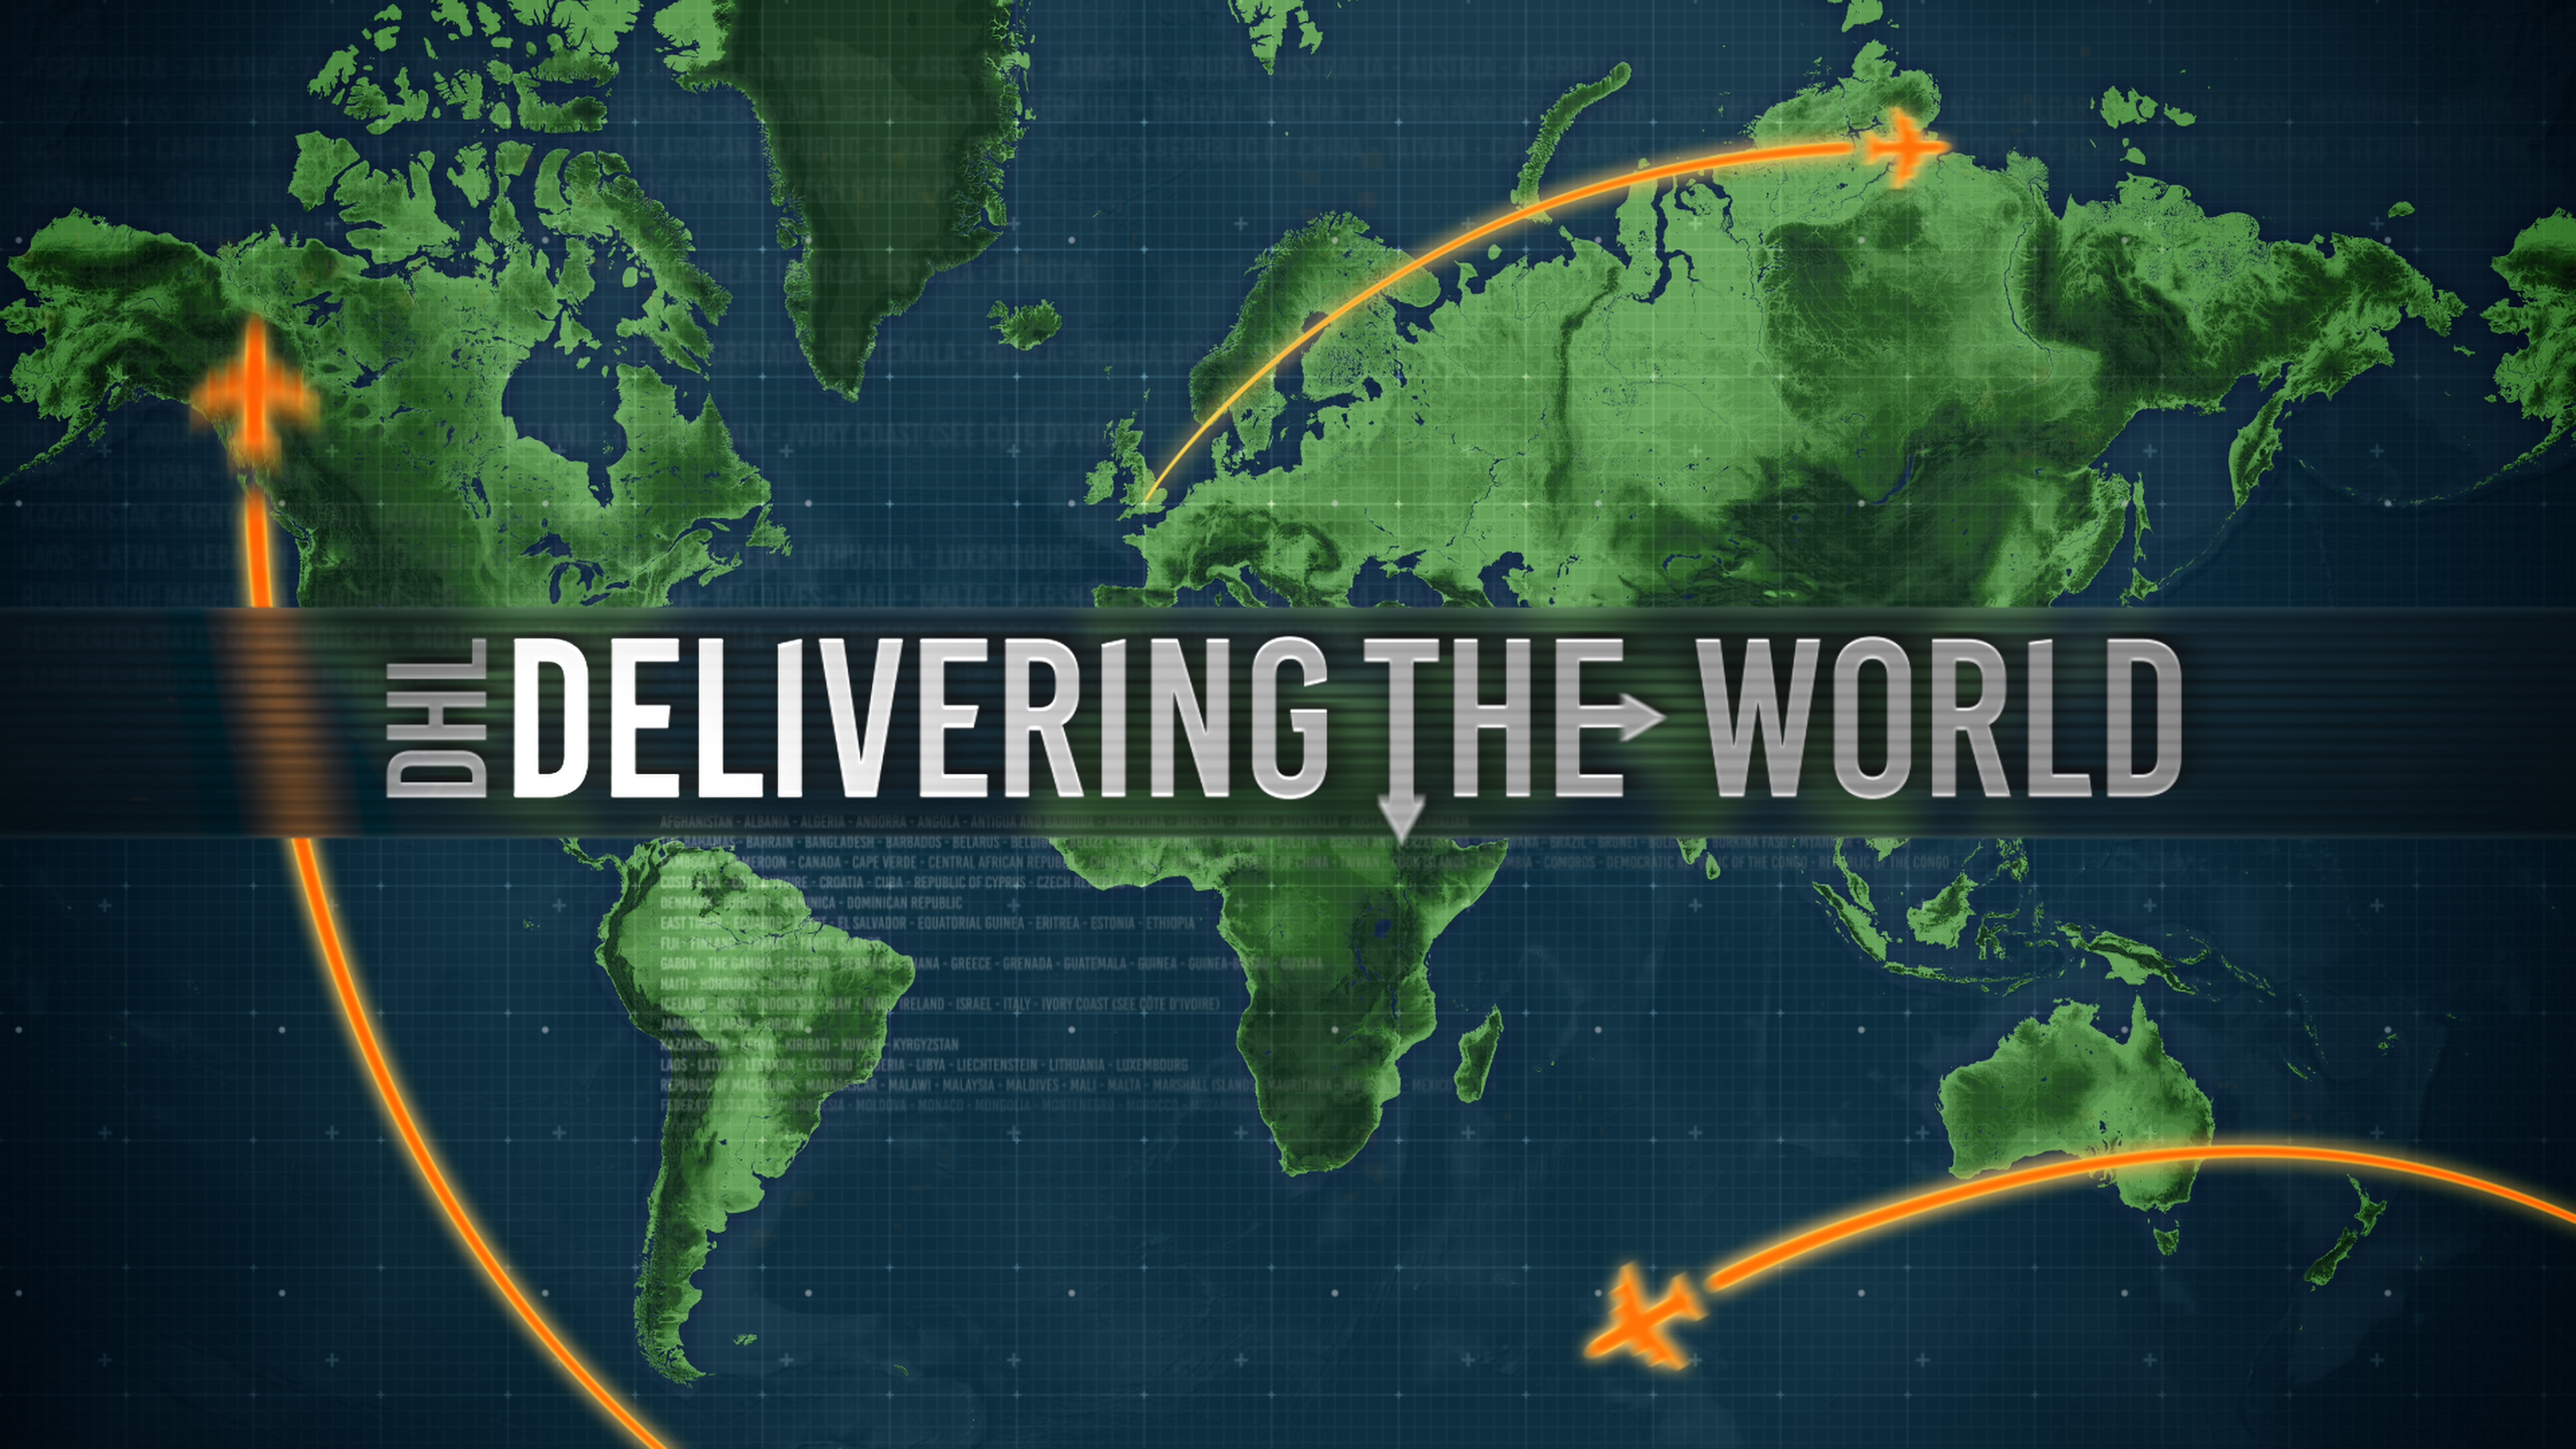 DHL - Delivering the World © Holey and Moley Ltd Channel 5